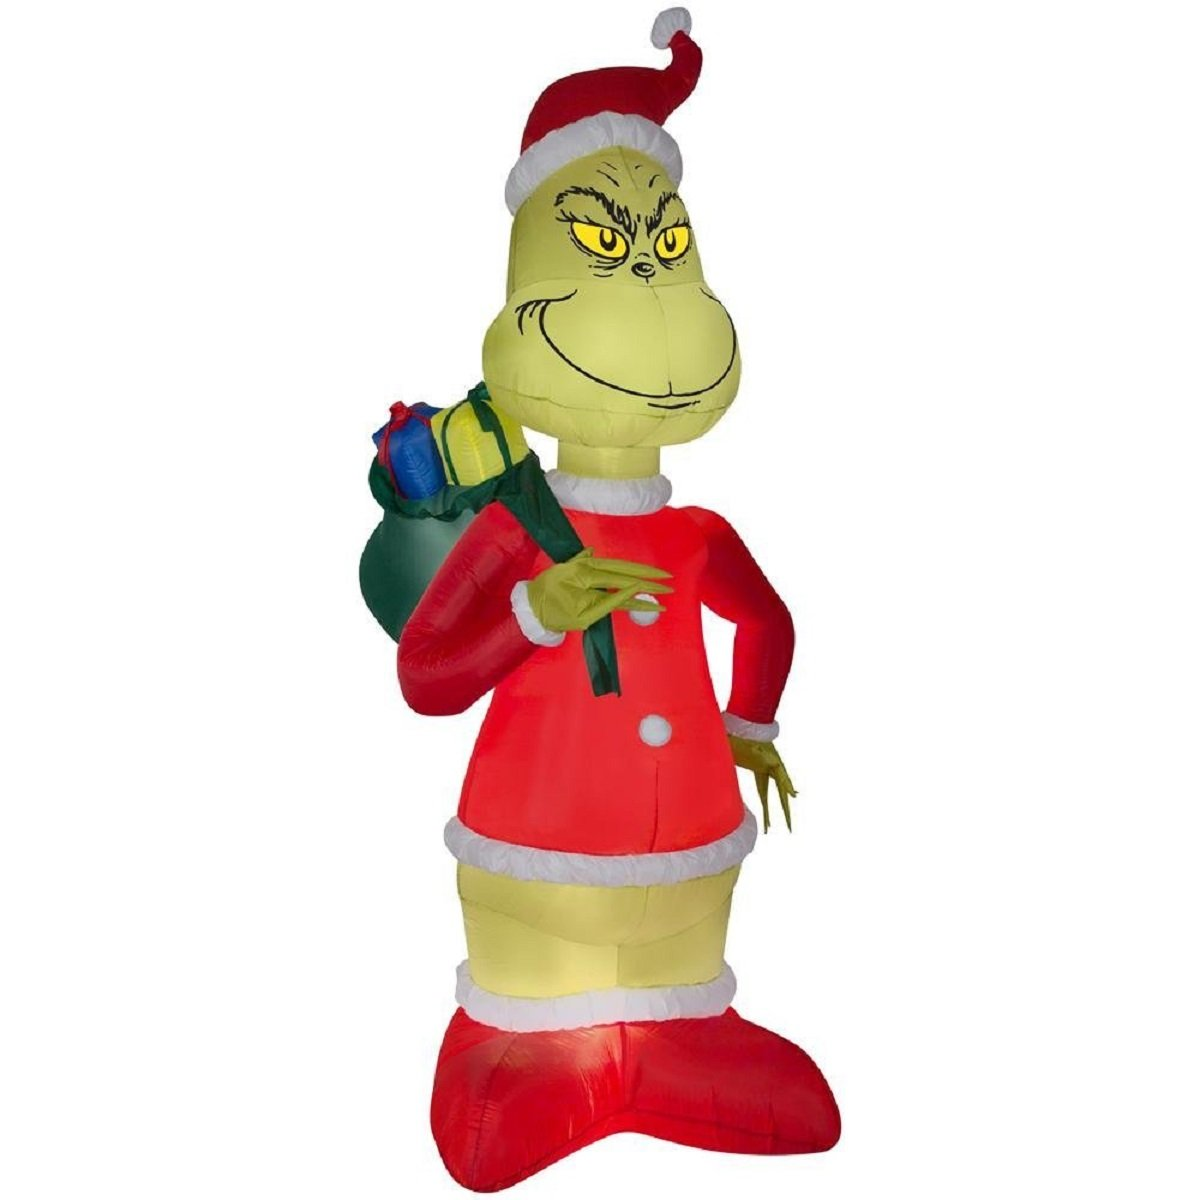 Inflatable Grinch Steals Christmas in Santa Suit with Sack 8 ft. H x 4.23 ft. W